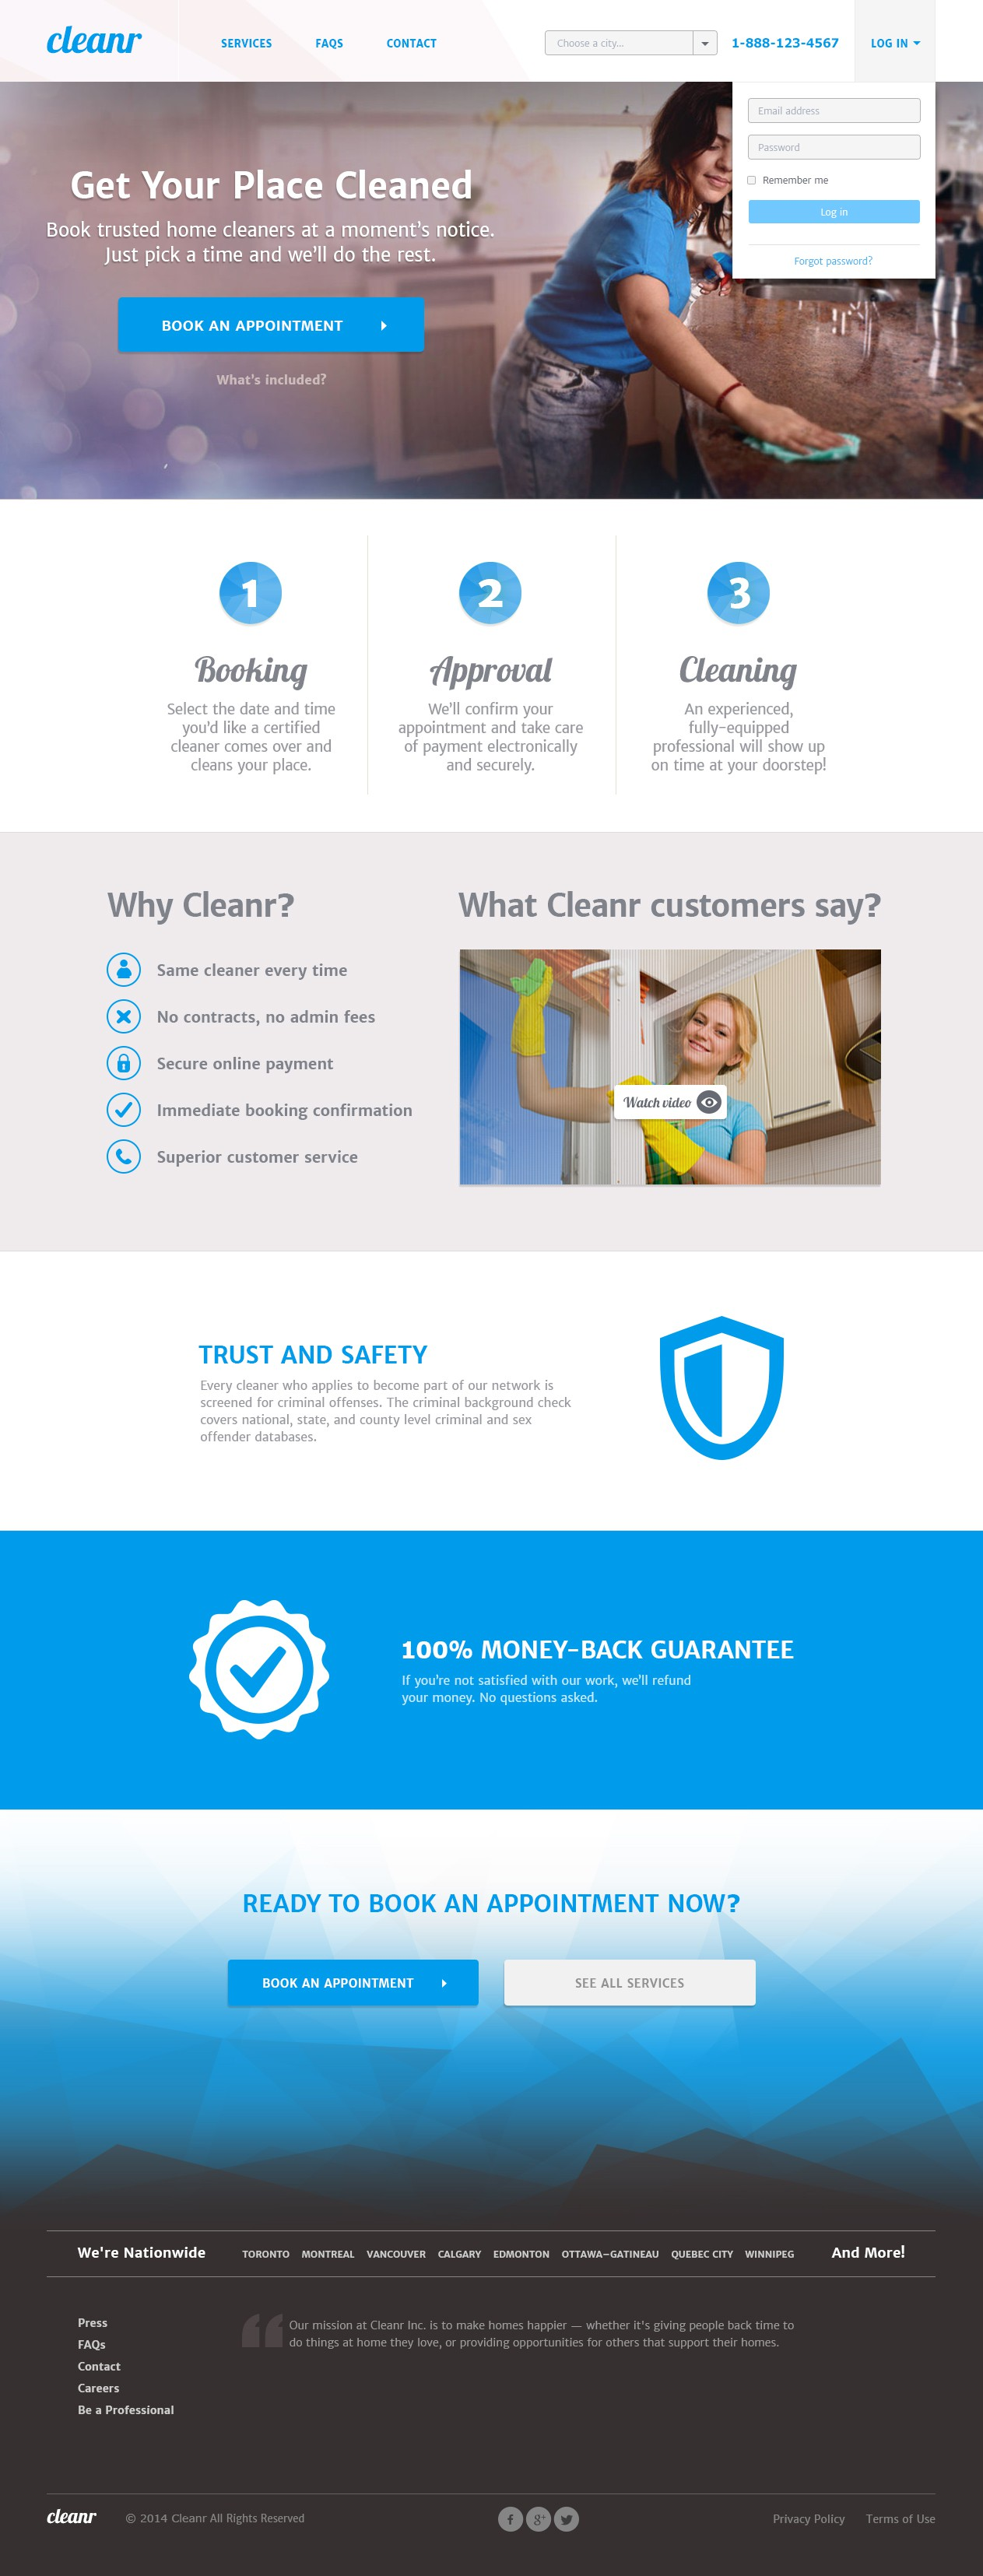 Design a trustworthy and clean landing page for a cleaning company. Cleanr.